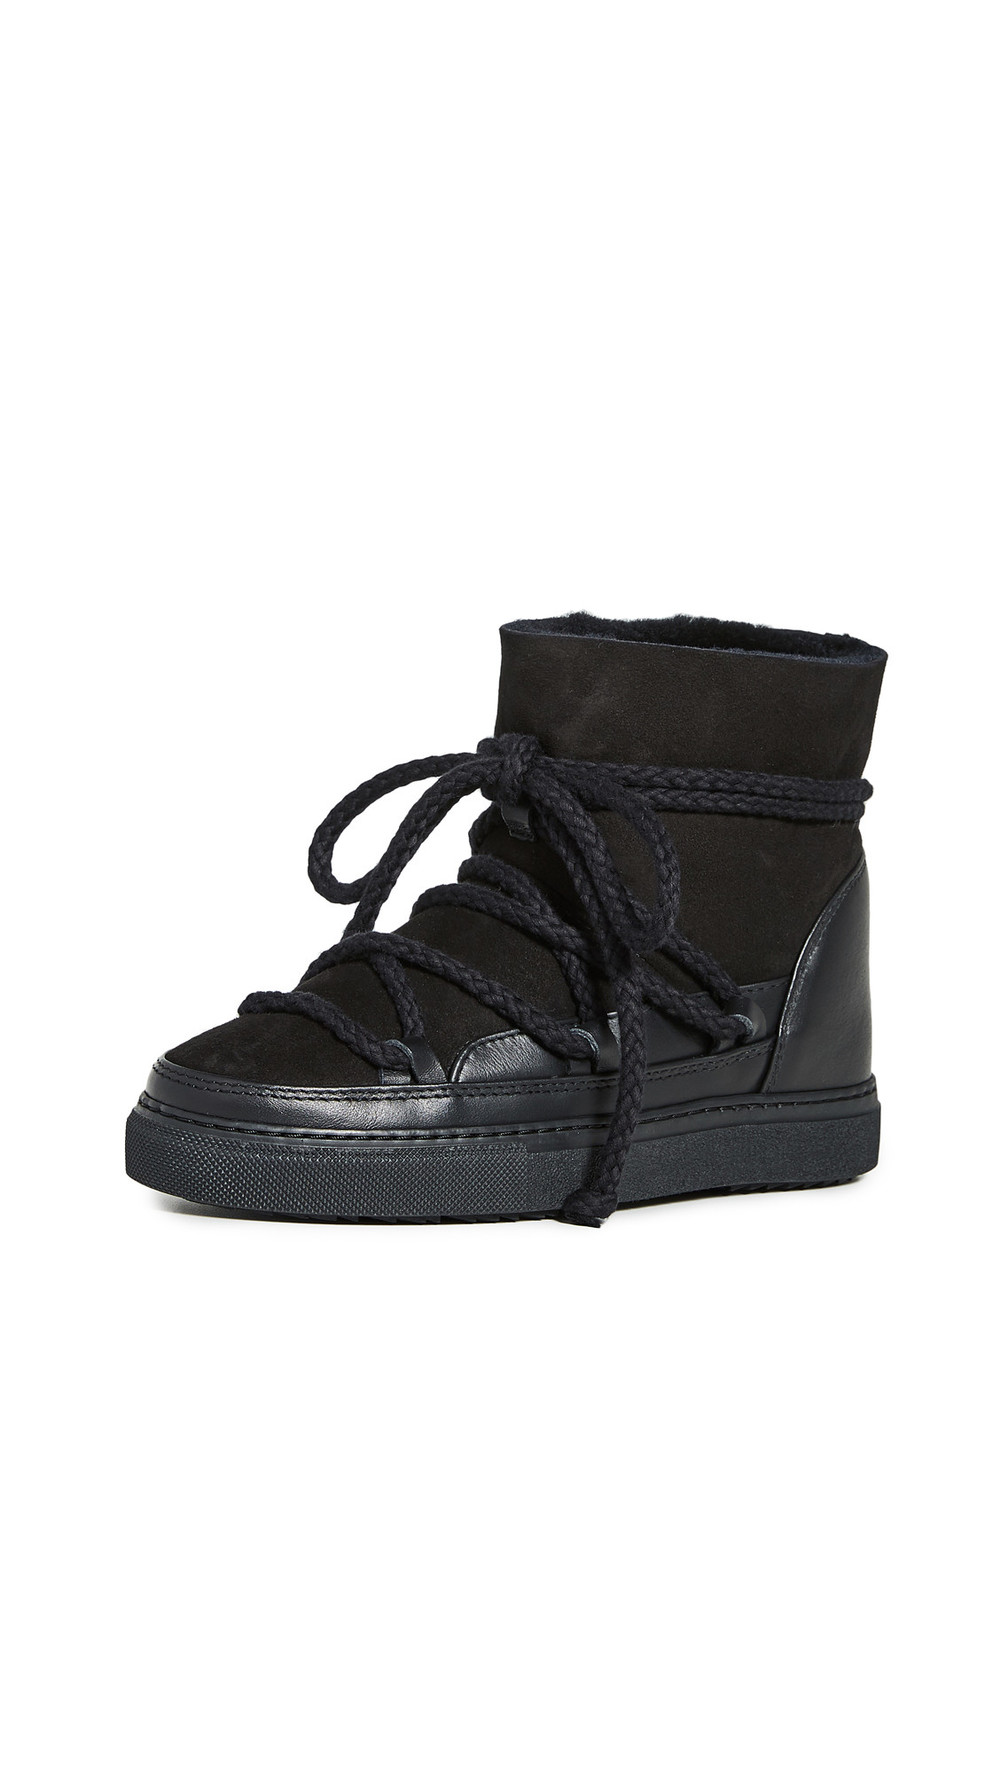 Inuikii Classic Shearling Sneakers in black